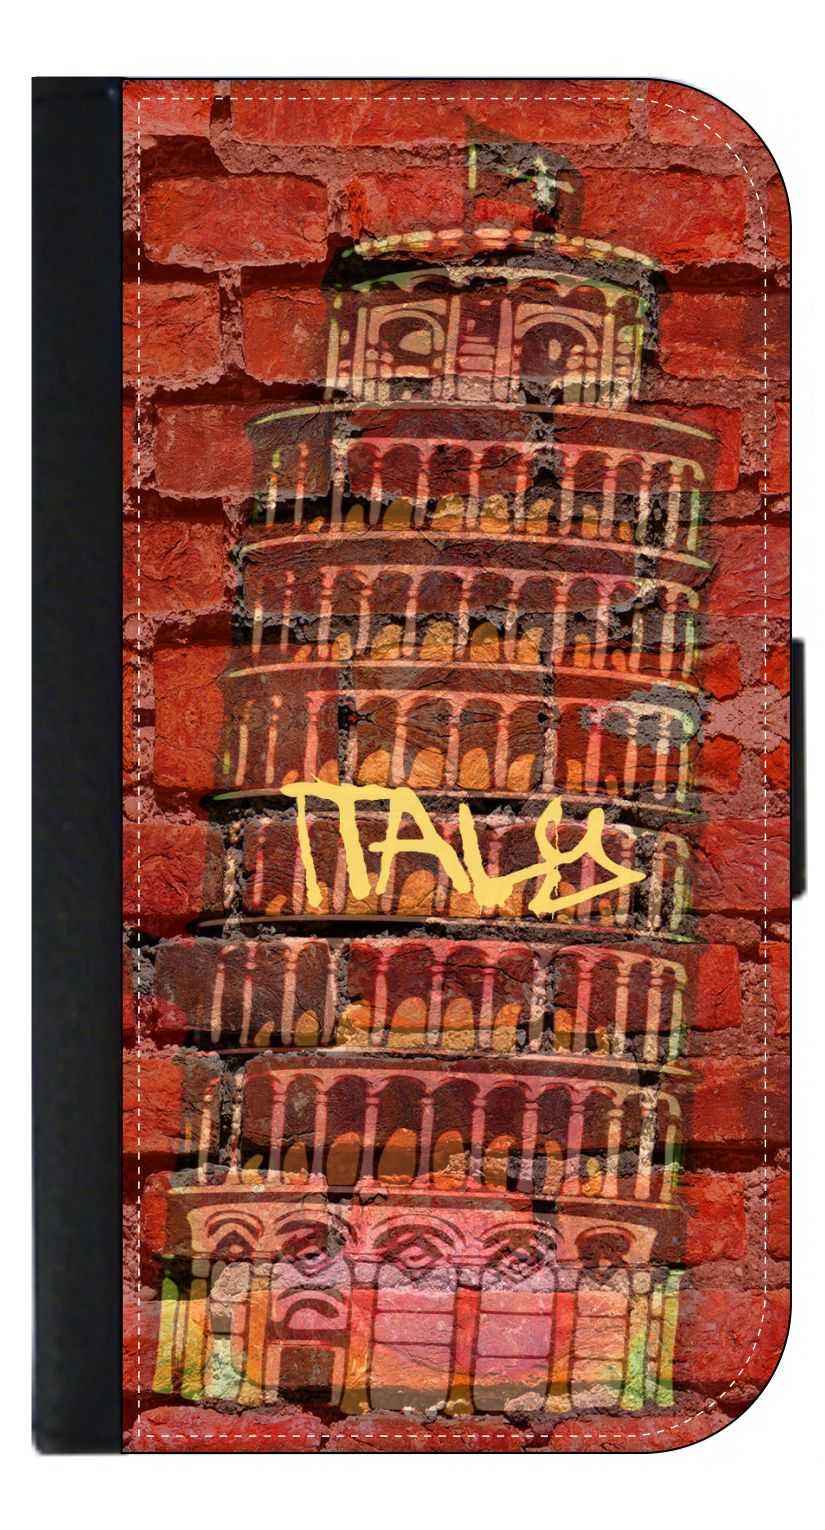 Italy- Leaning Tower of Pisa Brick Print Wall Art - Wallet Style Phone Case with  sc 1 st  Walmart & Italy- Leaning Tower of Pisa Brick Print Wall Art - Wallet Style ...